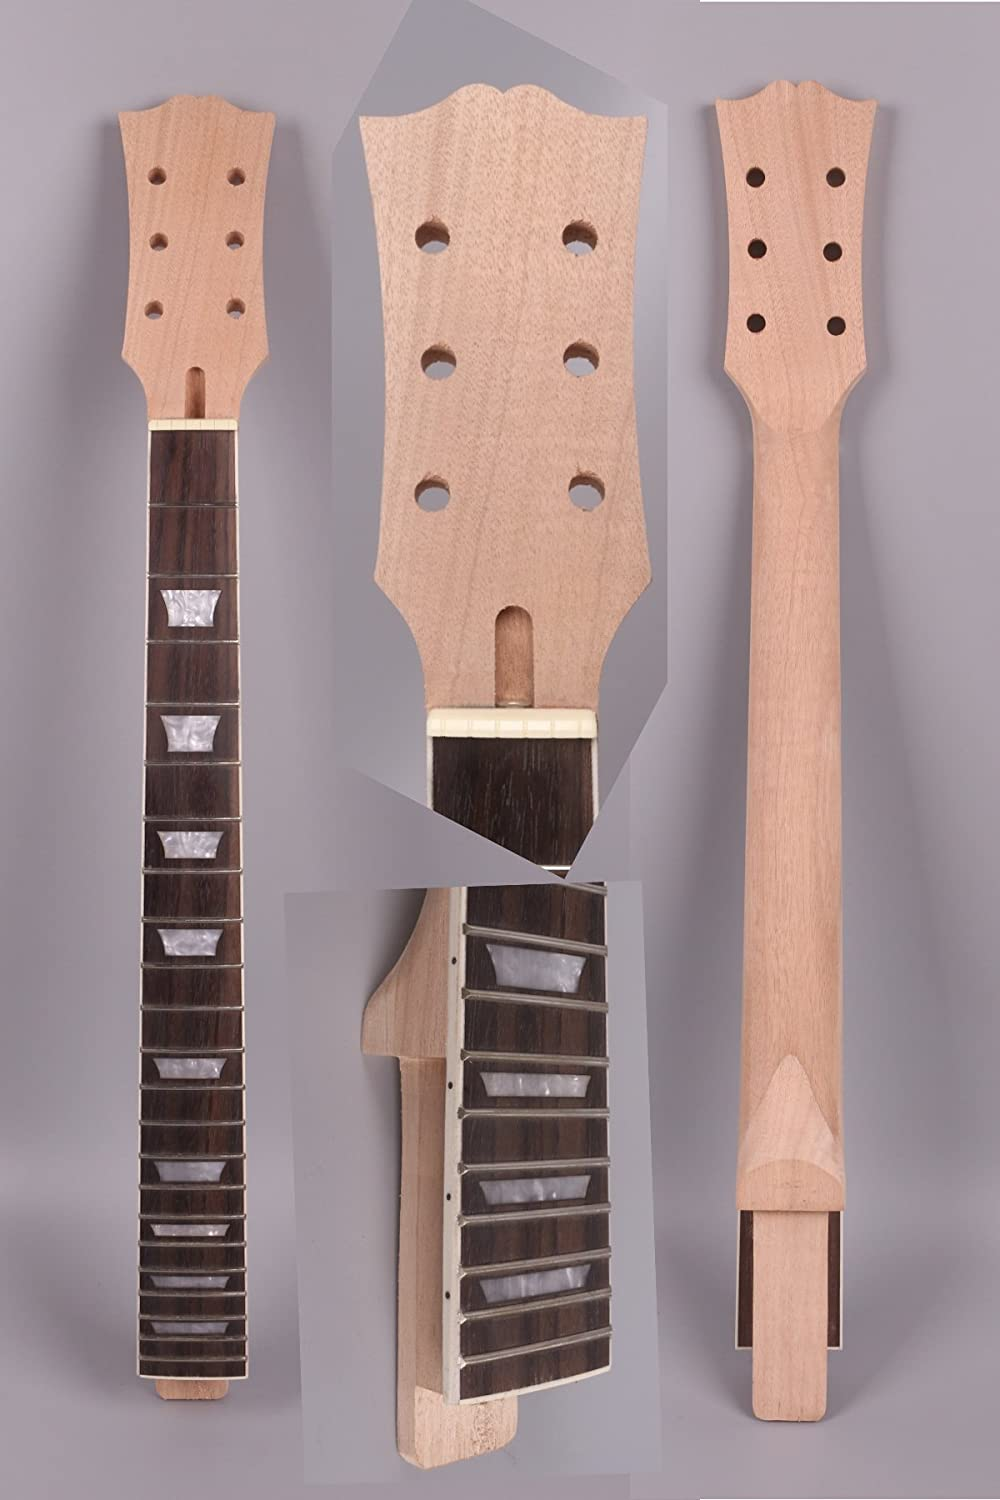 Yinfente Electric Guitar Neck 22 fret 24.75 inch Maple Rosewood Fretboard Guitar Replacement Neck Headstock 4334371757